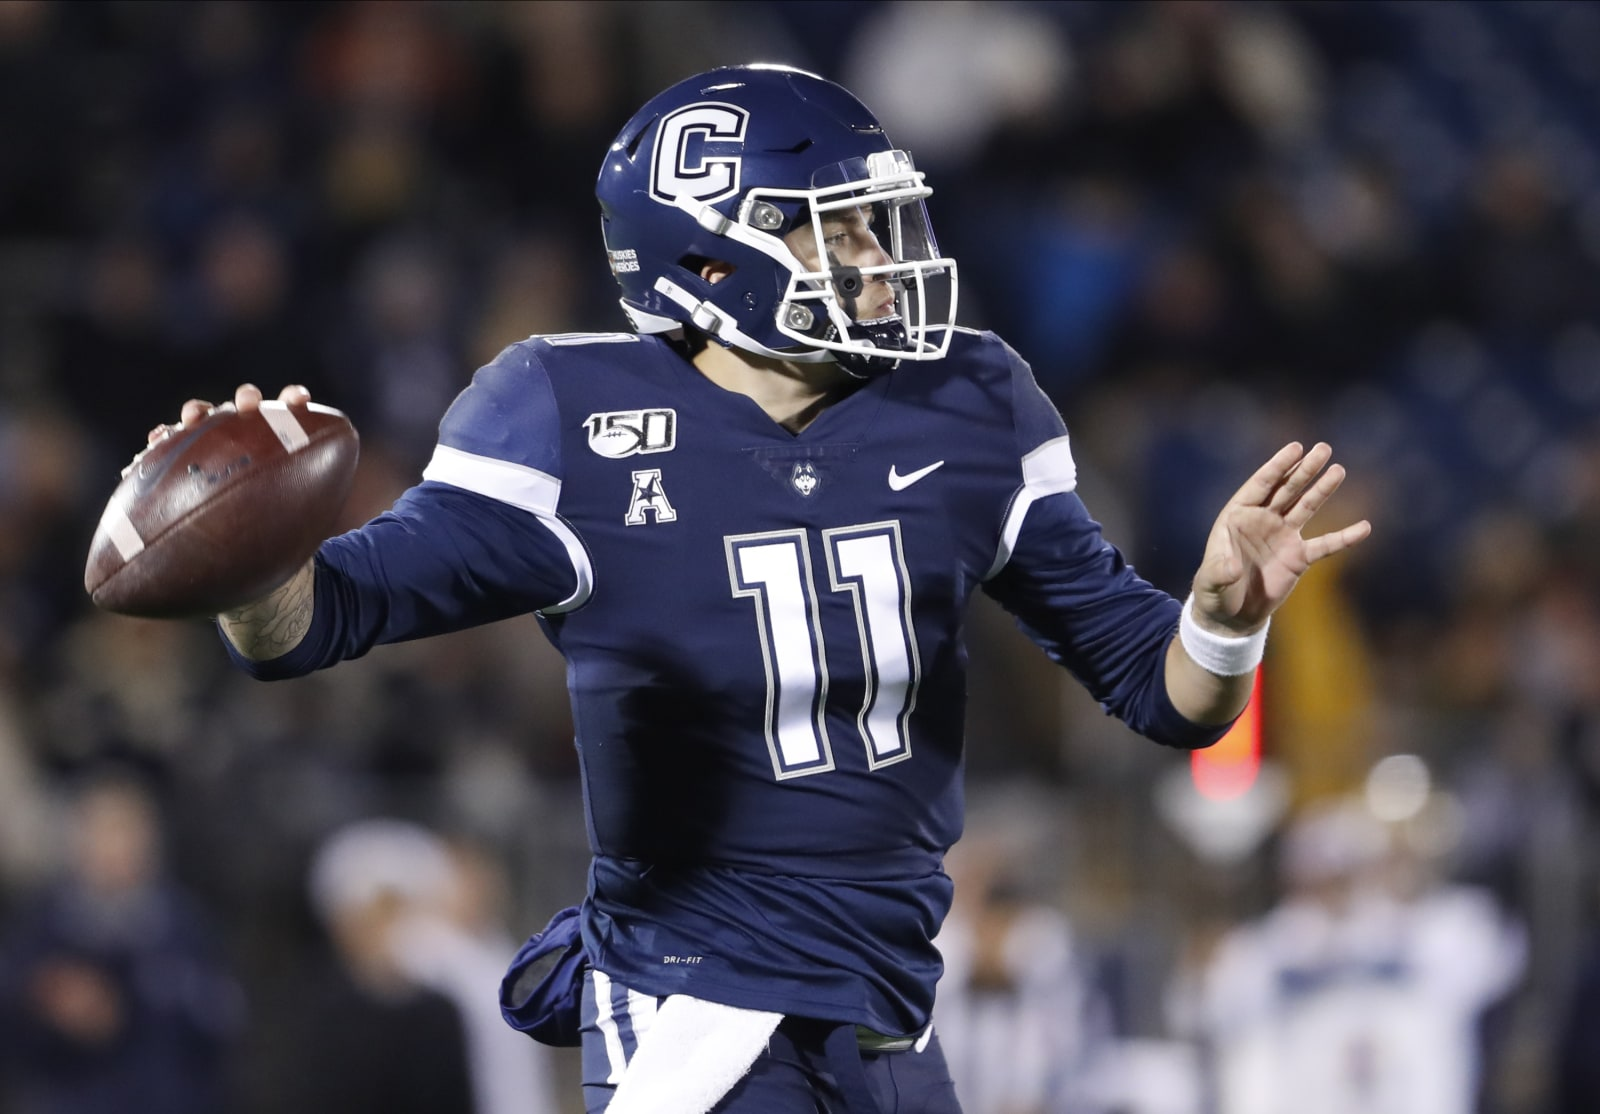 UConn Football: How will Huskies look in their first action since 2019? -  Page 2